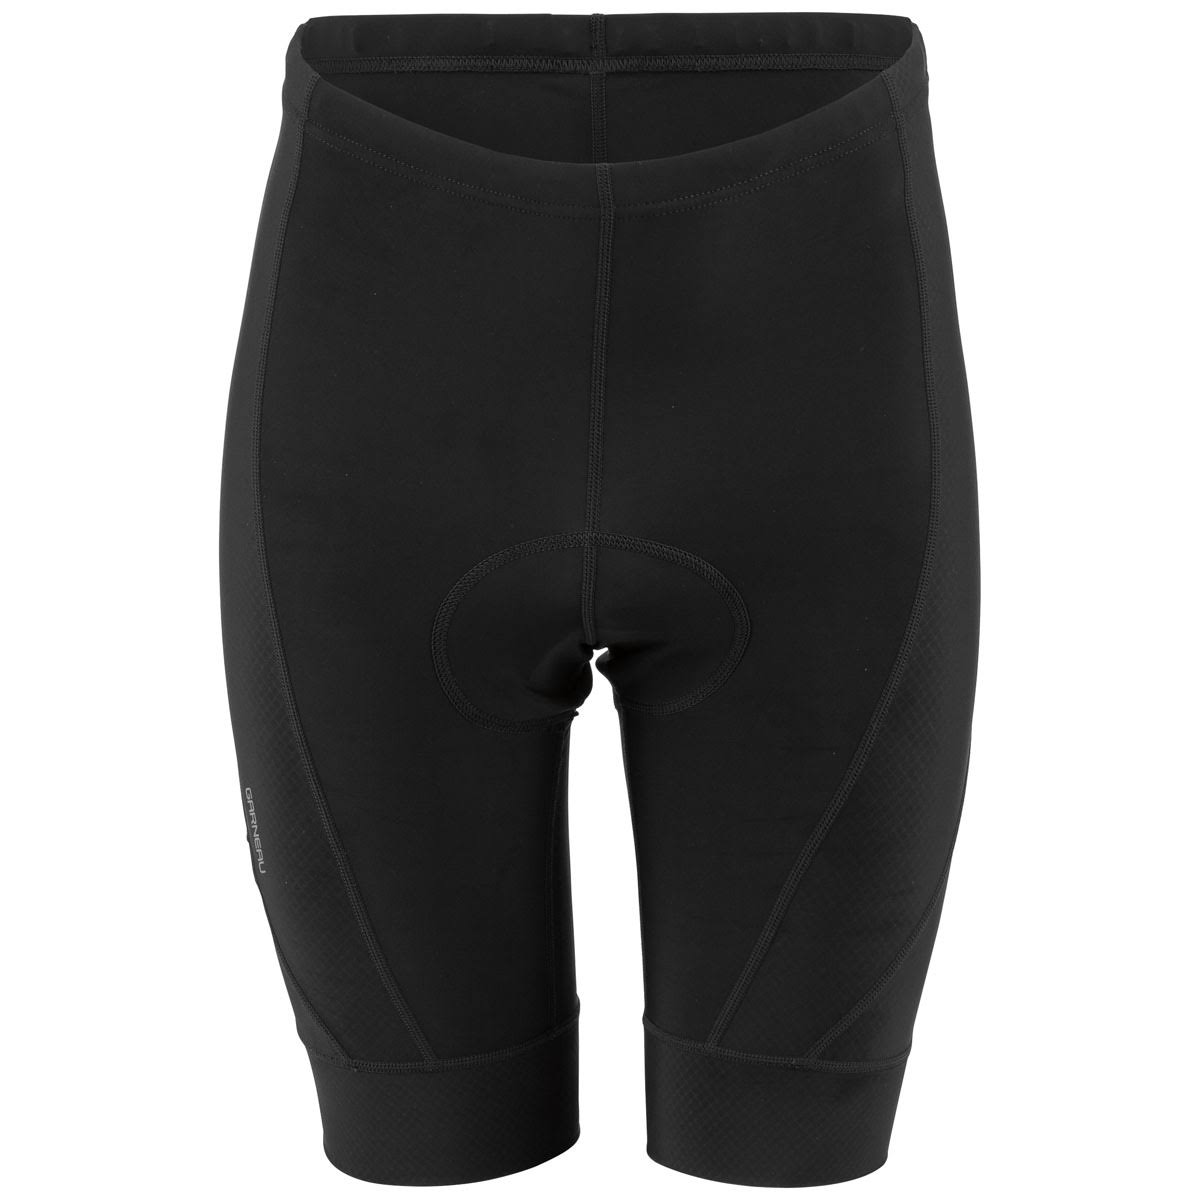 Louis Garneau 2020 Men's Optimum 2 Cycling Shorts - 1050025